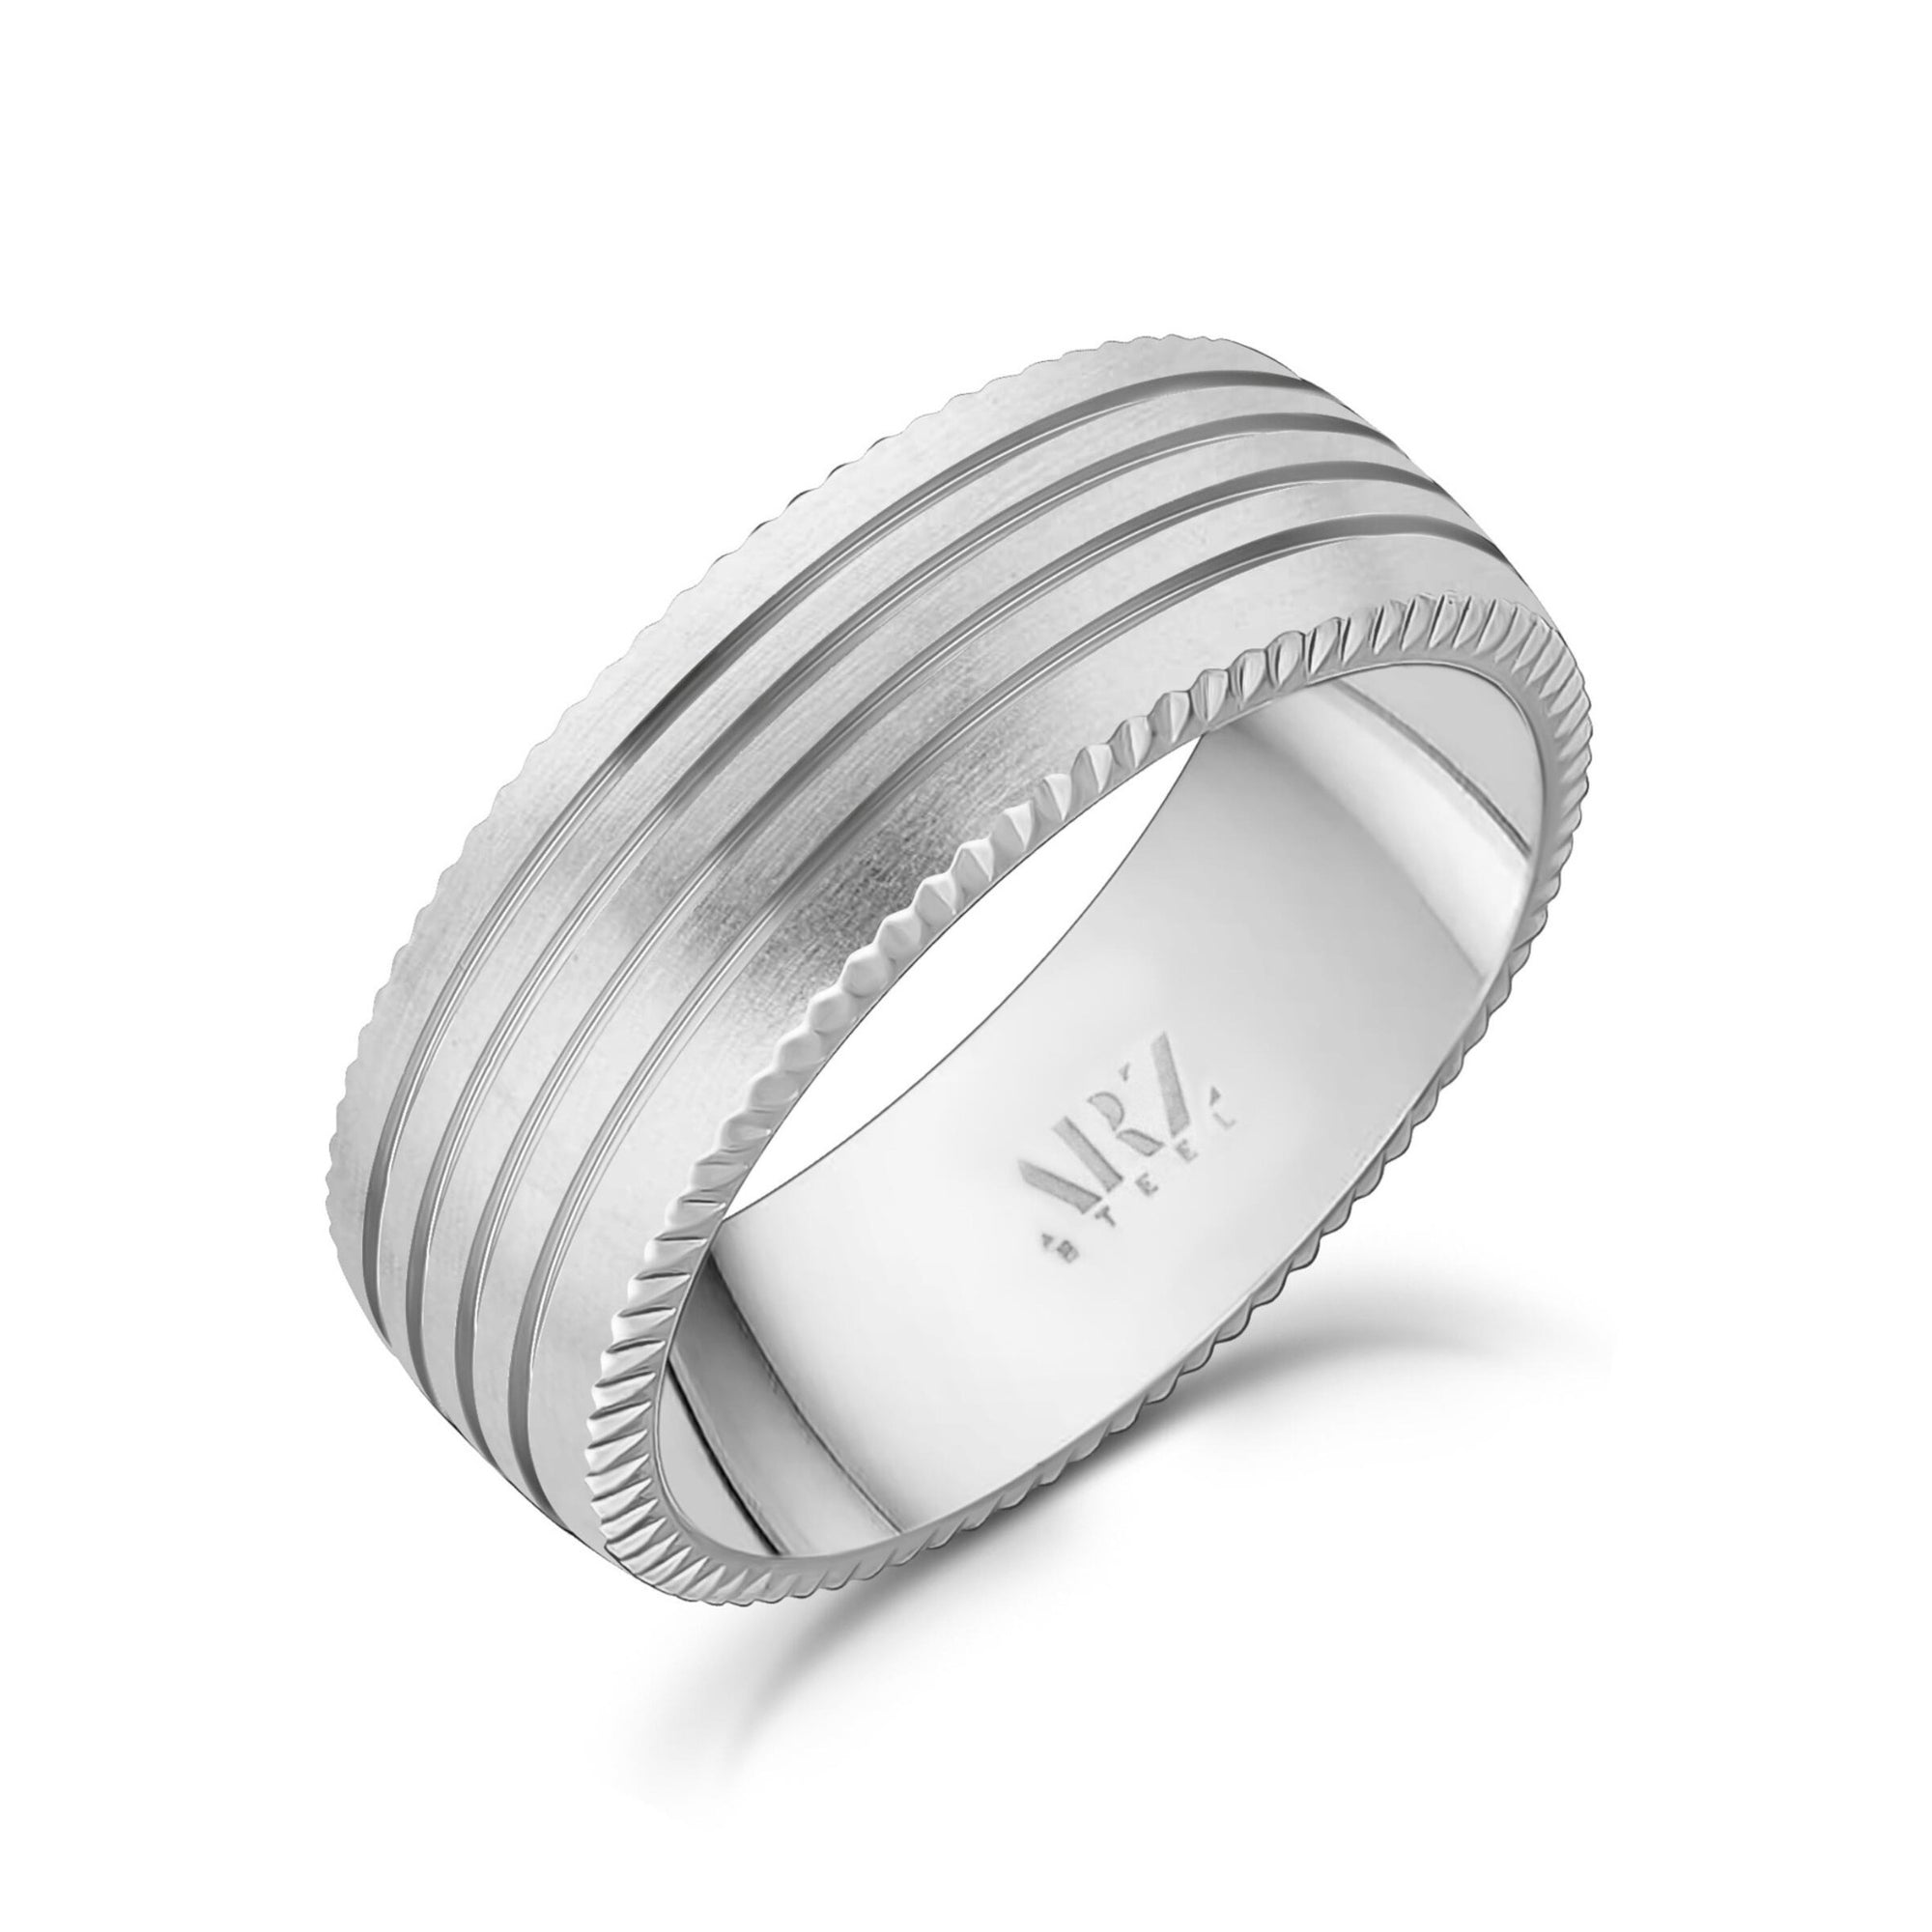 8mm Four Lined Matte Steel Band Ring at Arman's Jewellers